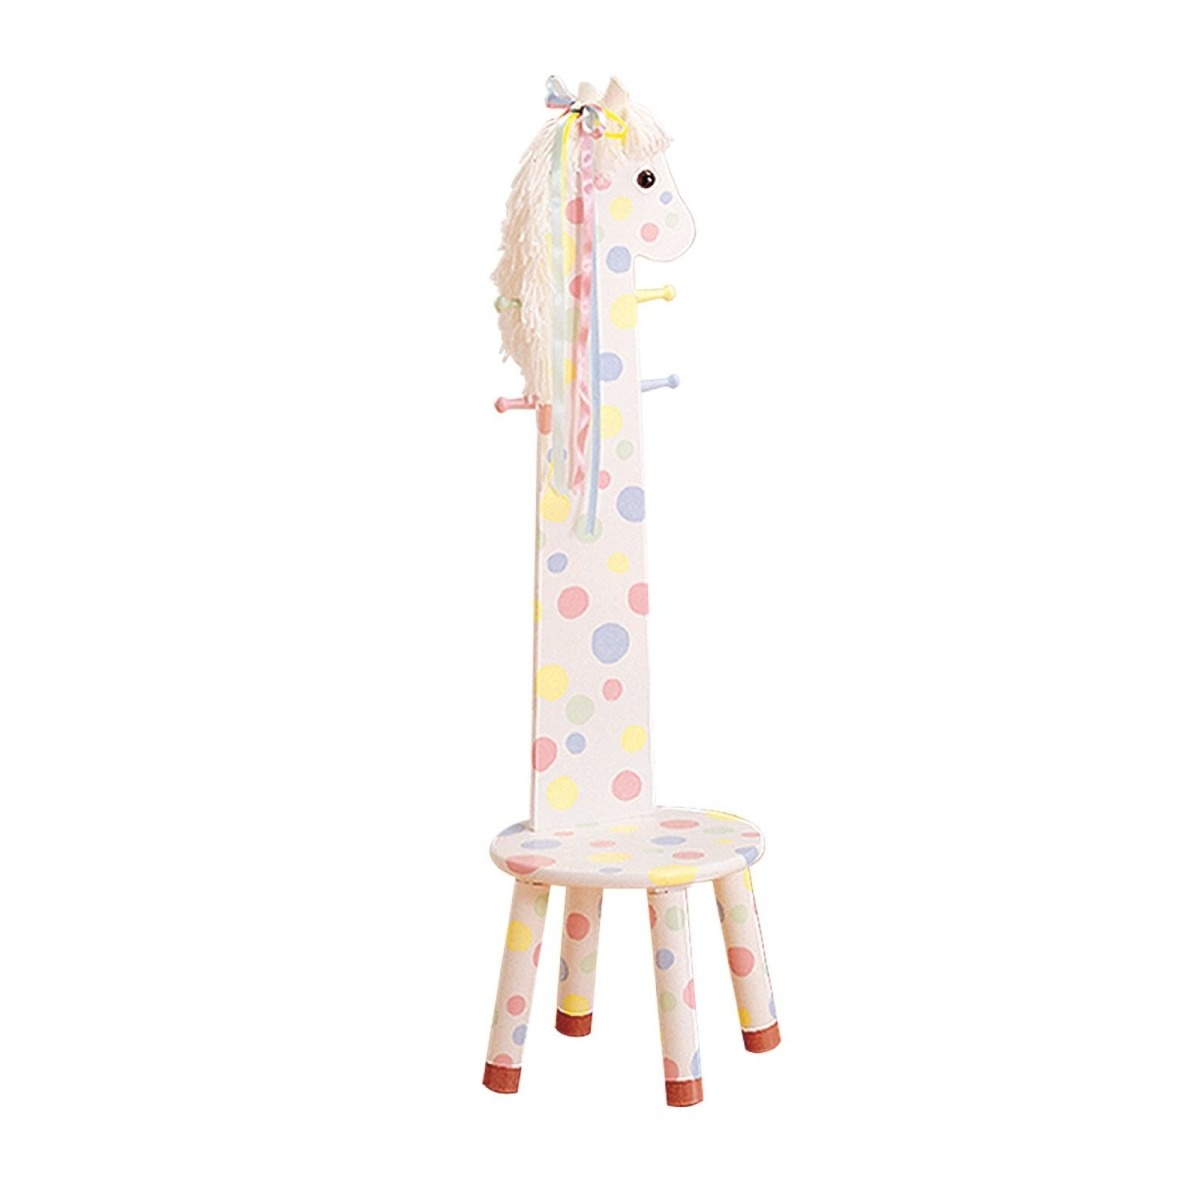 Asiento taburete con perchero silla para ni os teamson for Perchero pared infantil